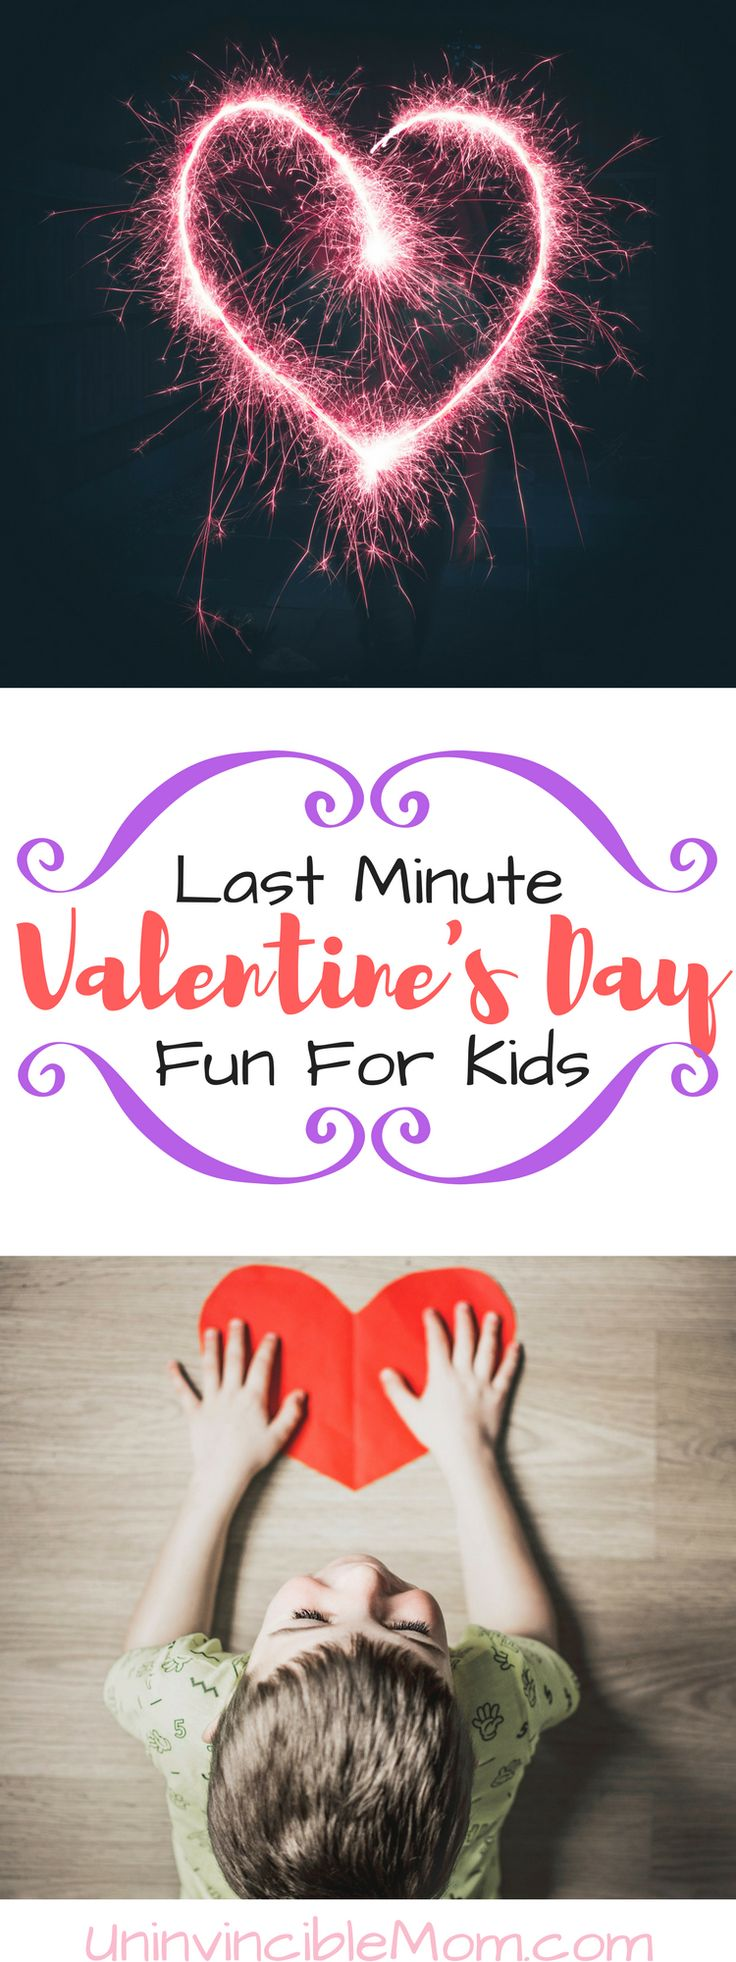 Is this one of the holidays that got away from you this year? Check out these ideas if you need to plan some last minute Valentine's Day fun for kids!